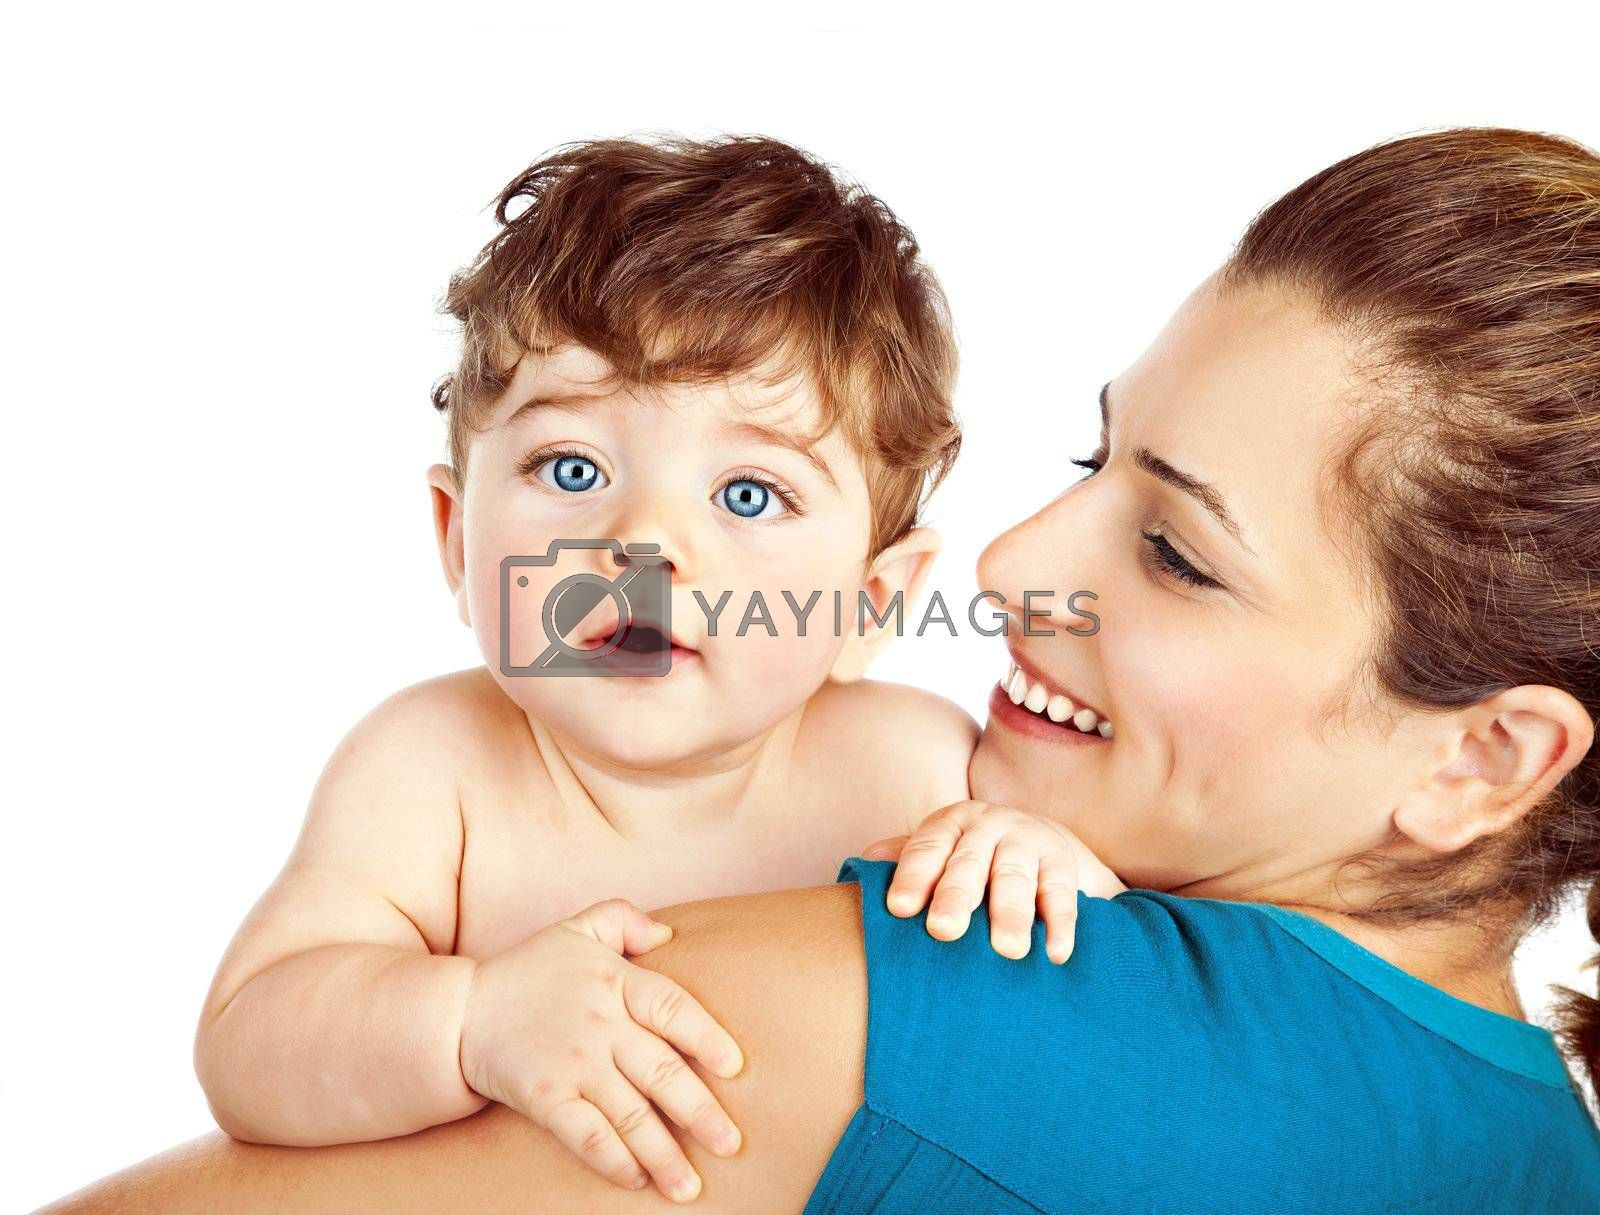 Mother with little baby isolated on white background, young beautiful mom hugging son, pretty brunet woman playing with cute small boy, smiling girl holding adorable sweet child, happy family concept